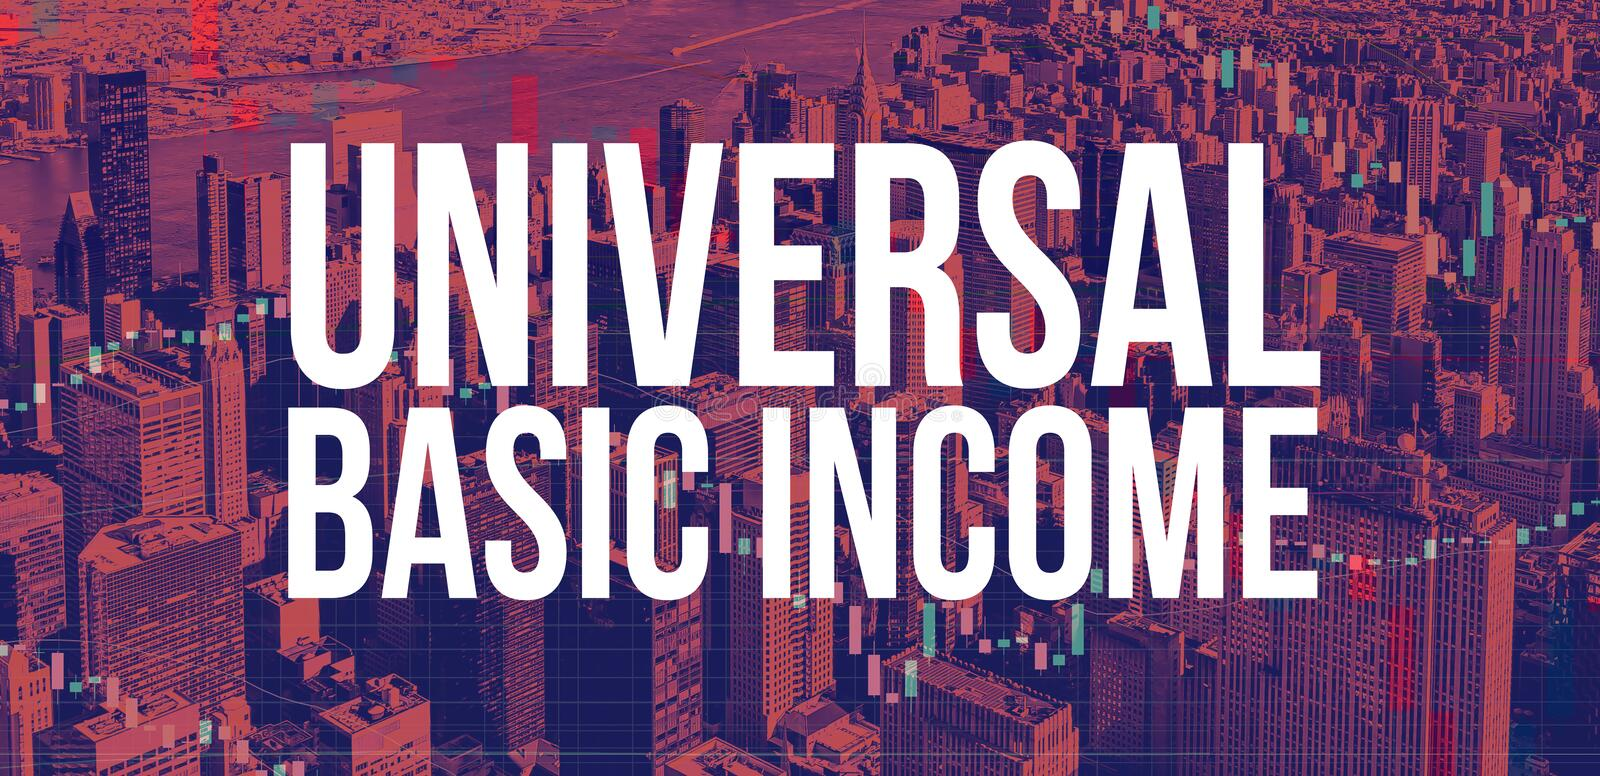 Universal Basic Income theme with New York City skyscrapers. Universal Basic Income theme with Manhattan New York City skyscrapers royalty free stock photos